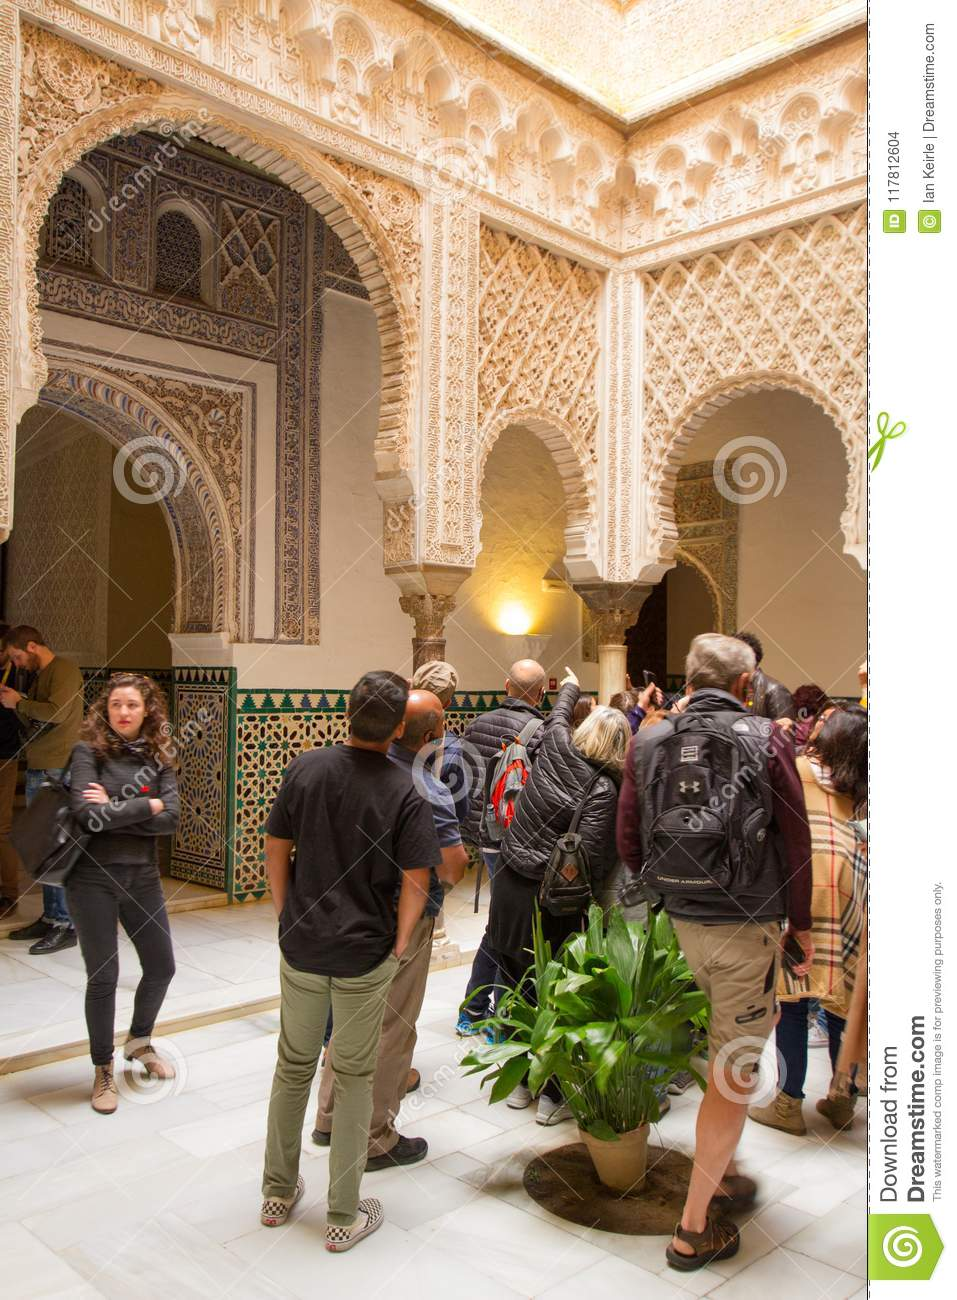 tourist viewing the islamic architecture of the alcazar in seville